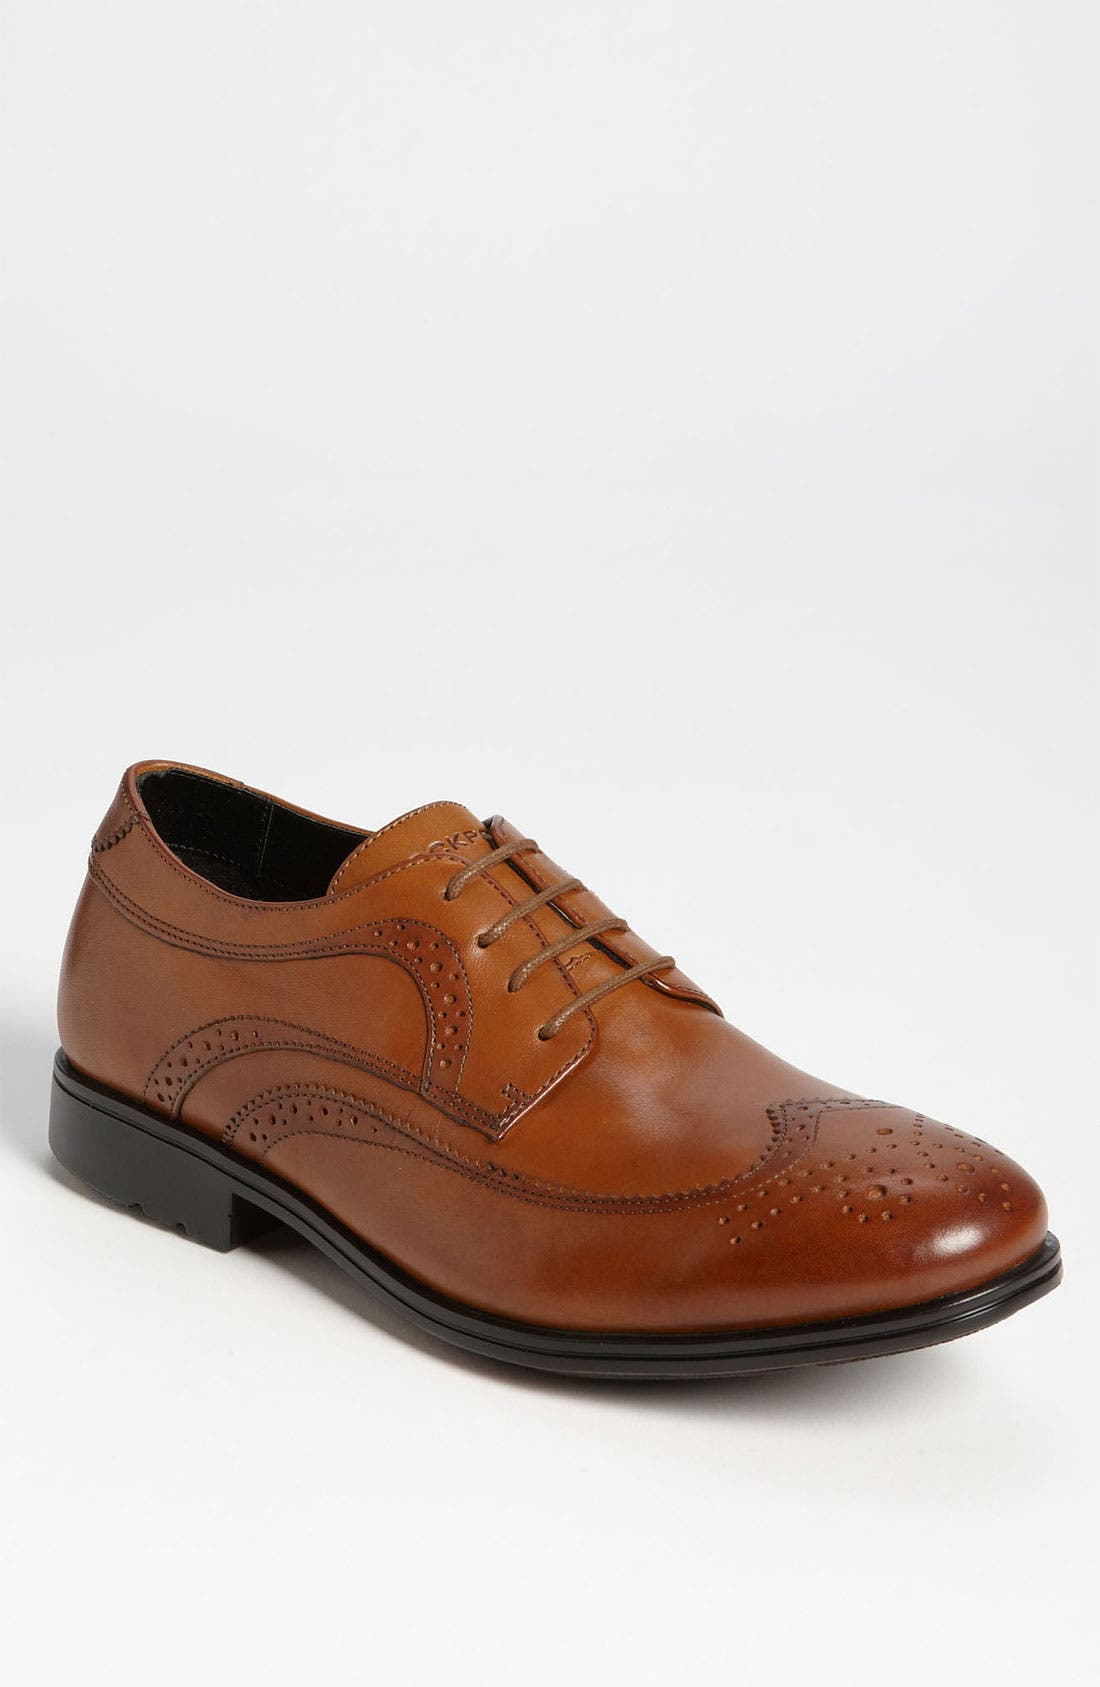 Alternate Image 1 Selected - Rockport 'Fairwood' Wingtip